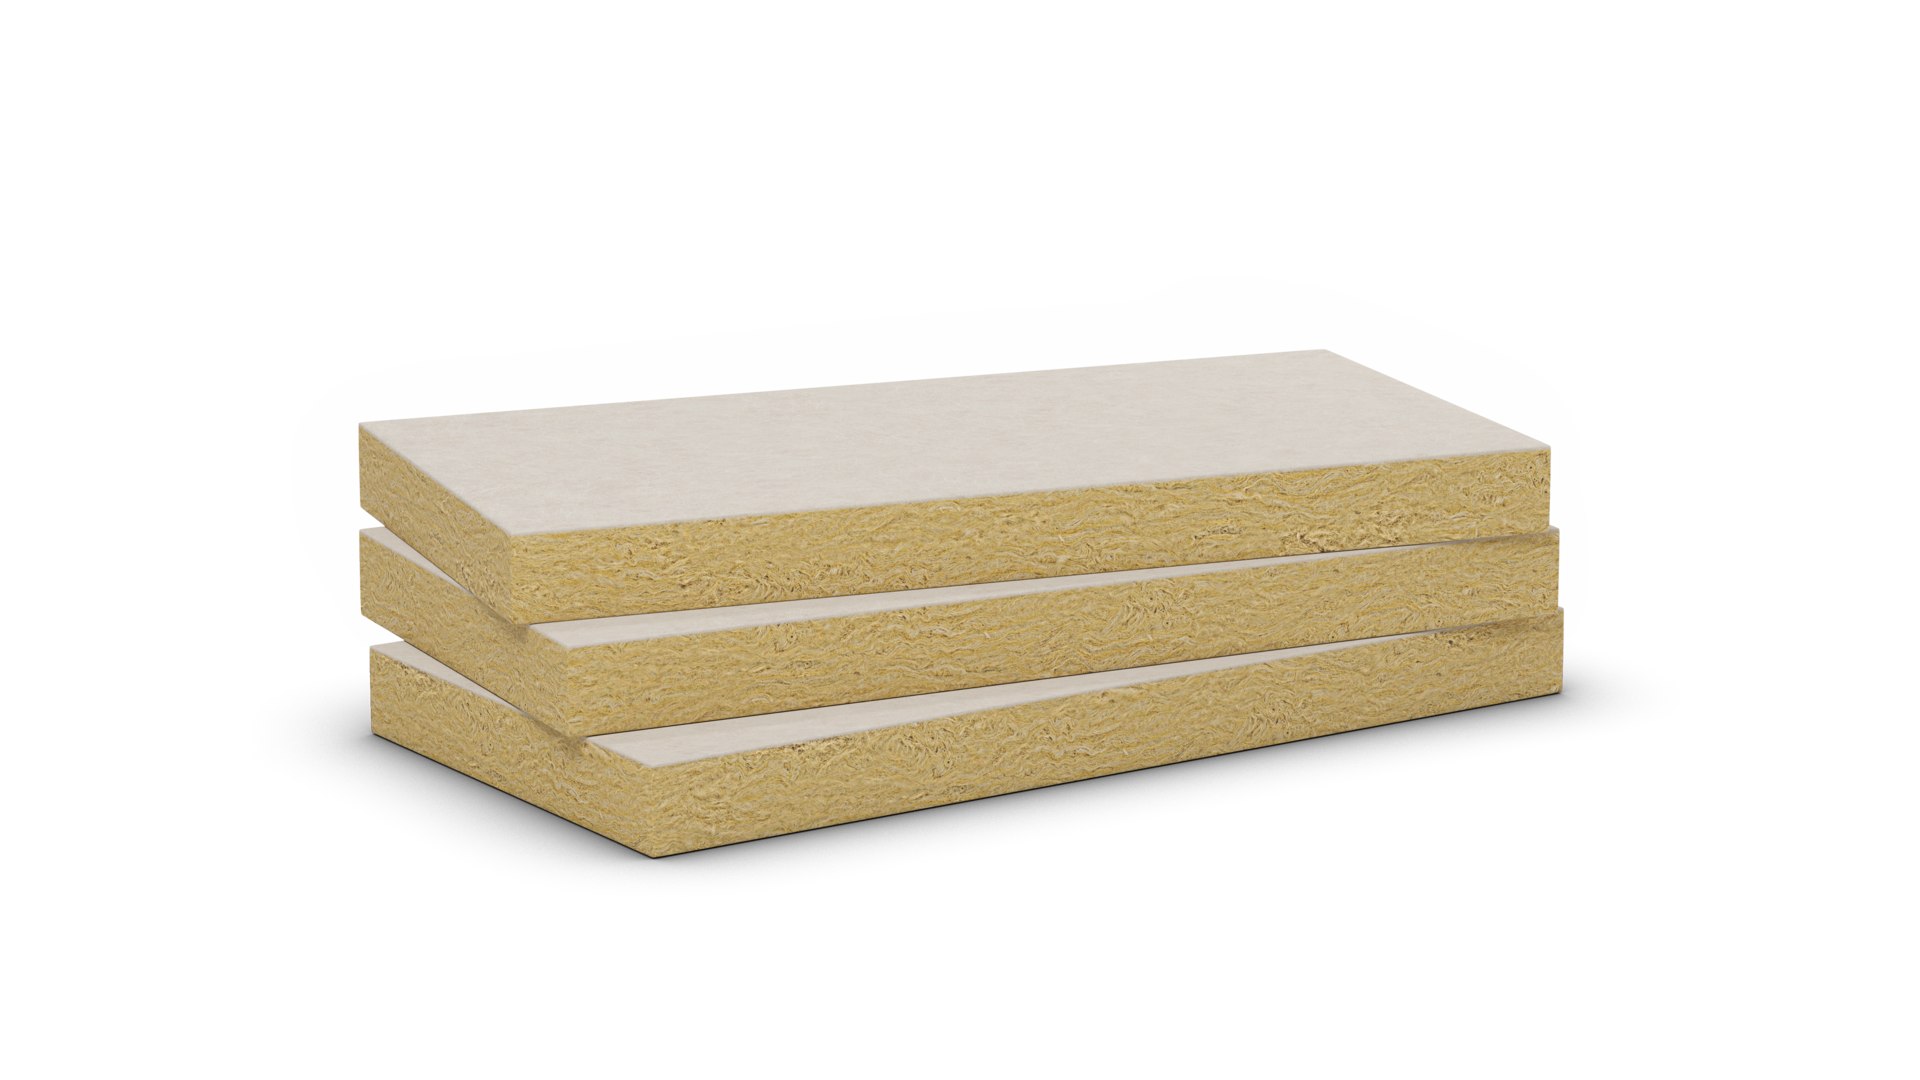 Mono density stone wool slab with white fleece. Products: Ceilingrock, Cosmos B